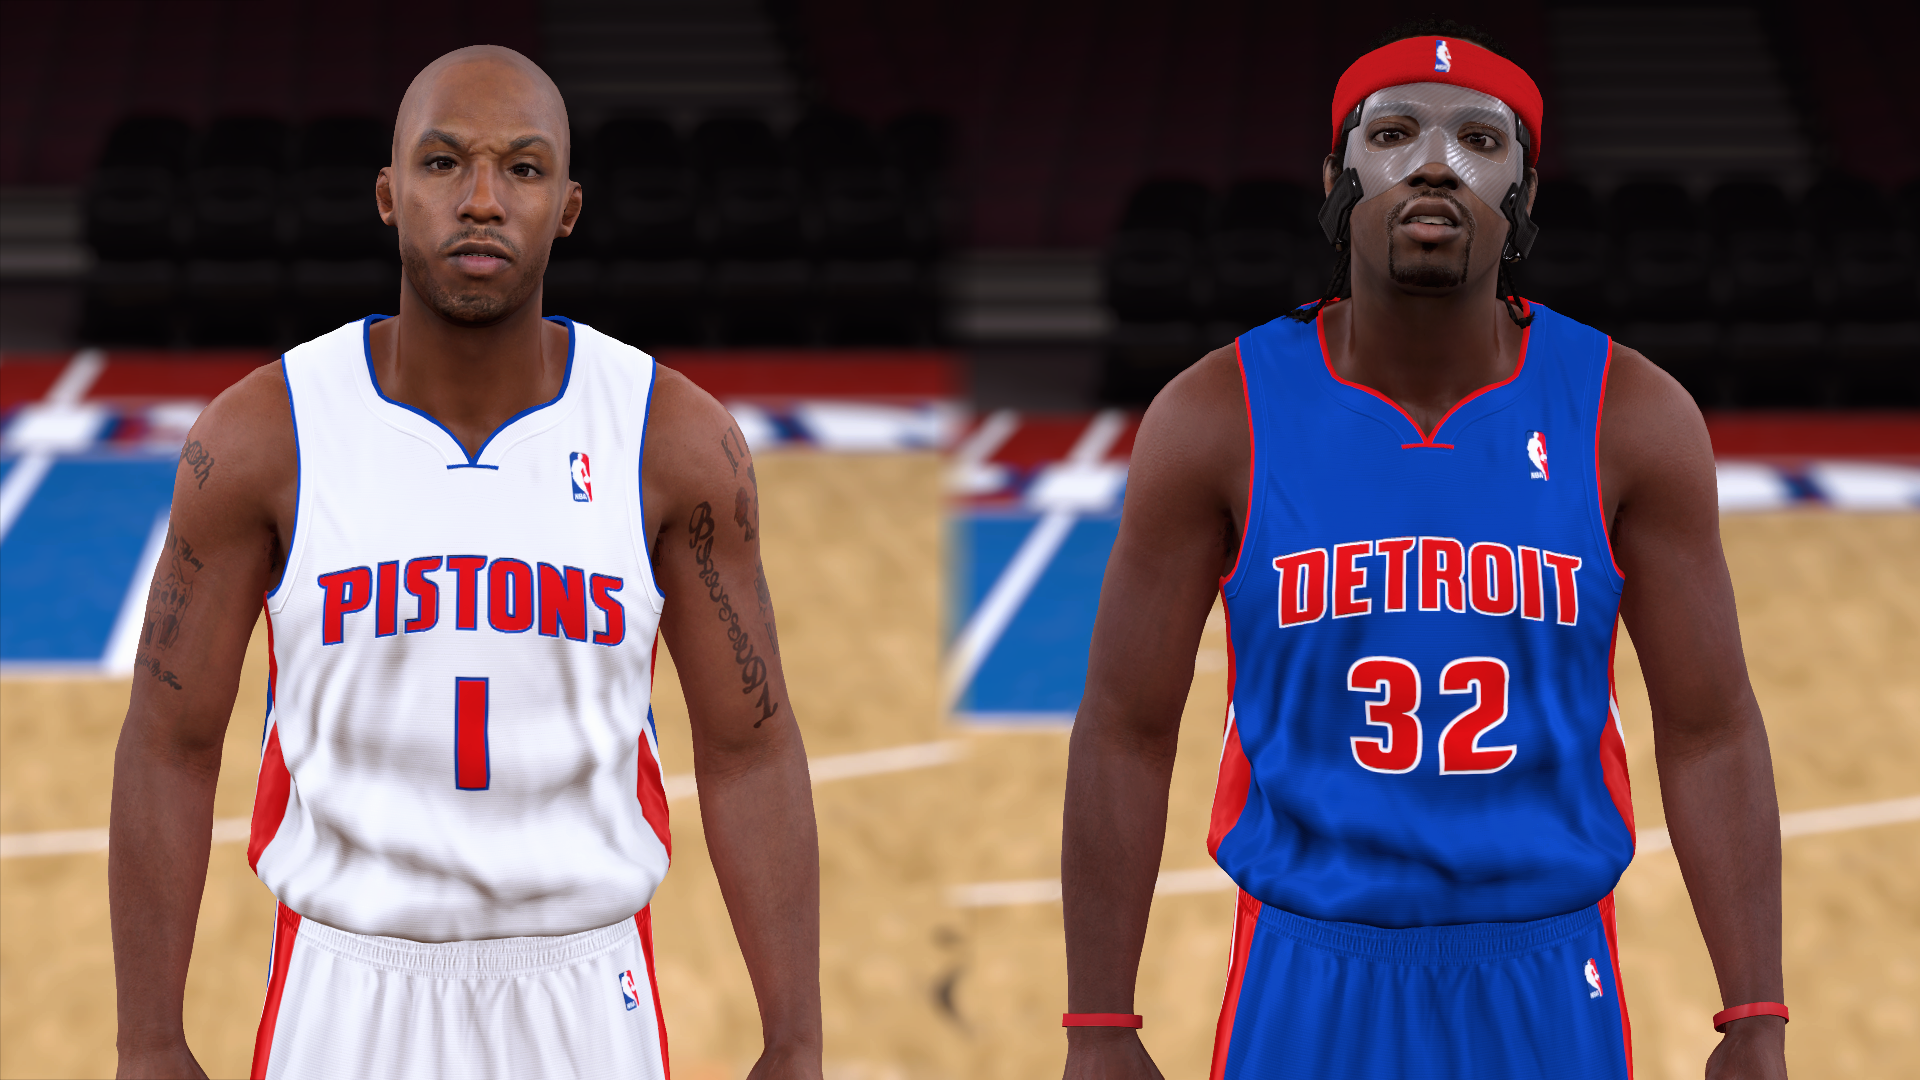 2003-2004 Pistons Jerseys - PeacemanNOT